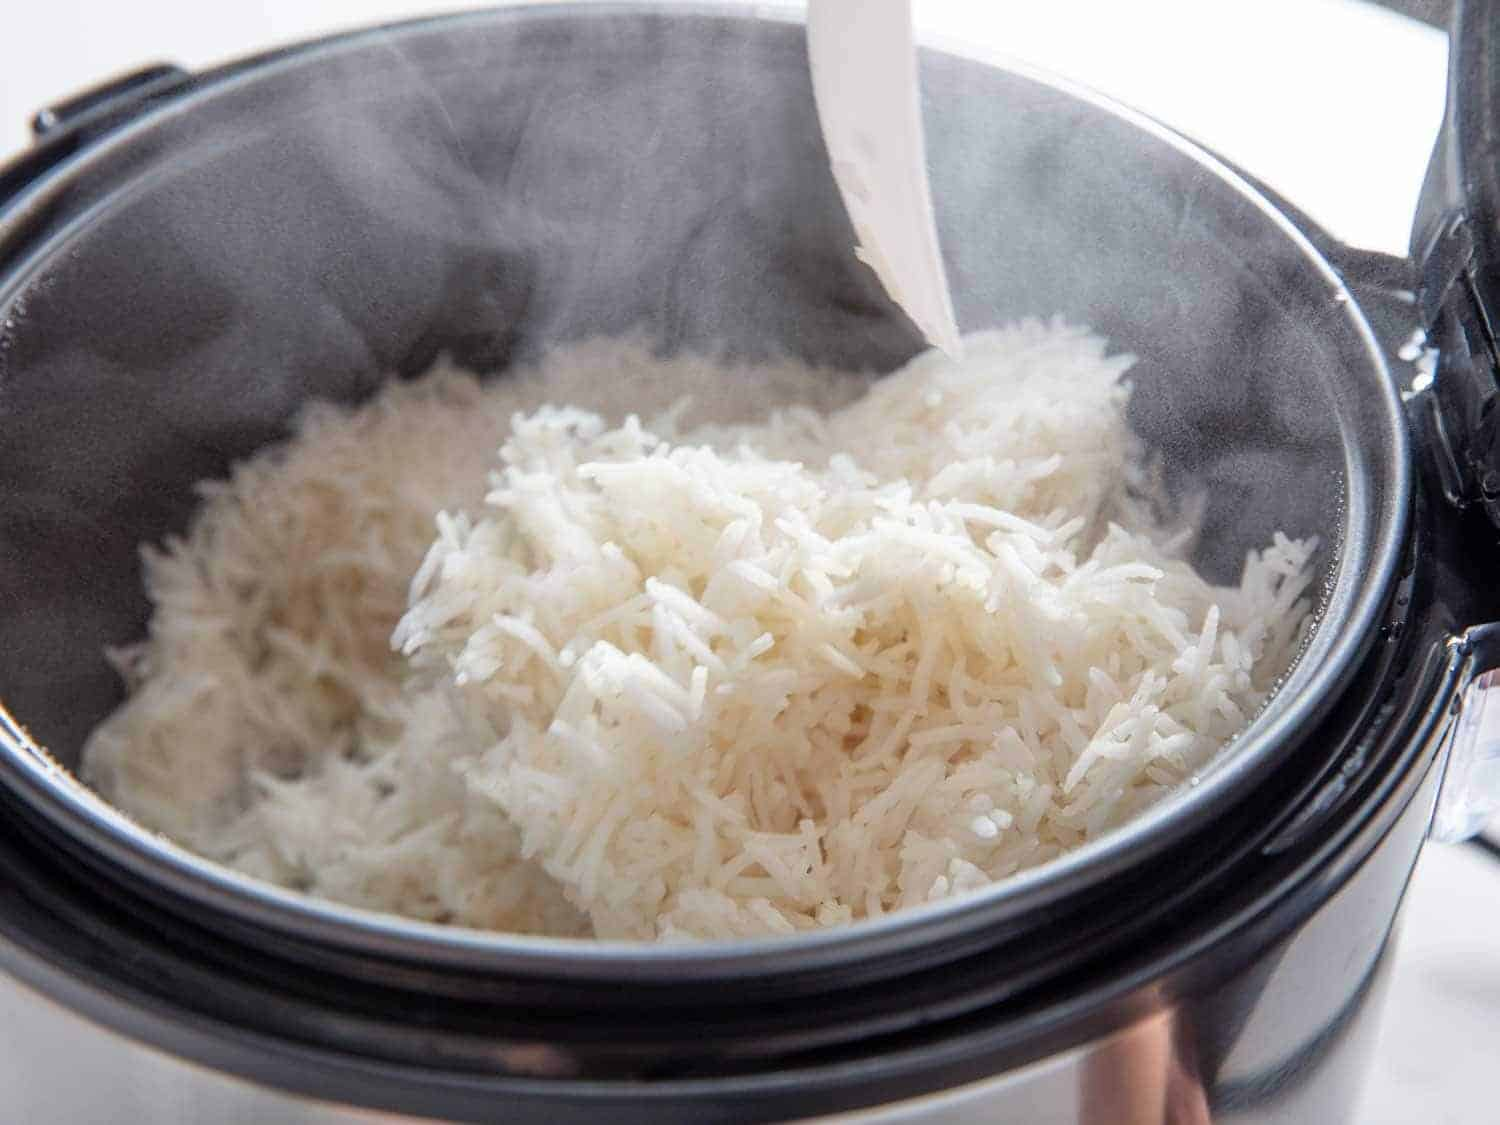 Steam releasing from rice cooker